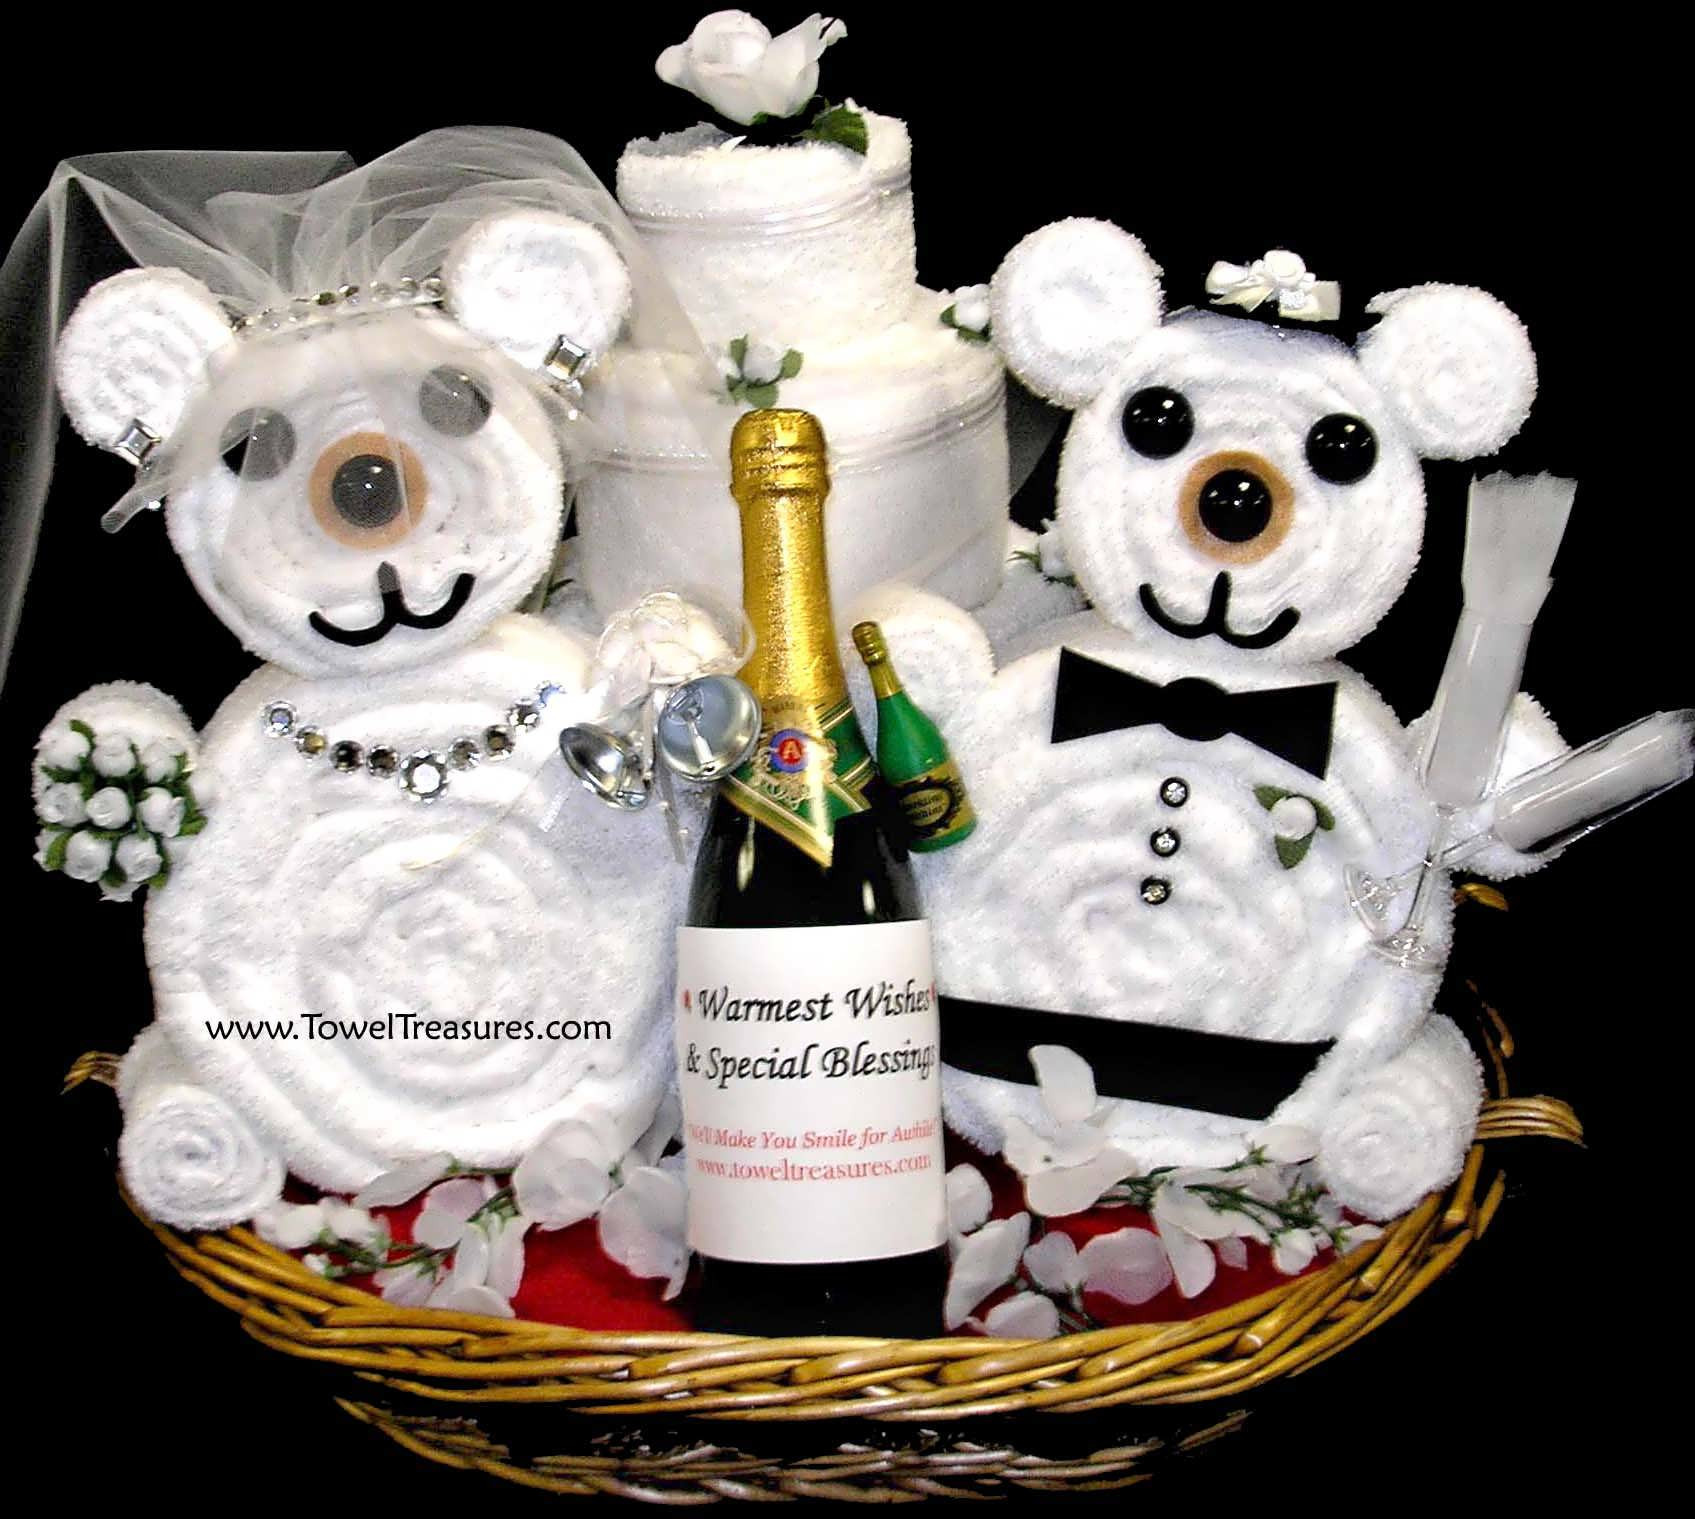 Best ideas about Ideas For Wedding Gift . Save or Pin Bridal Shower Gift Basket With Poem Now.